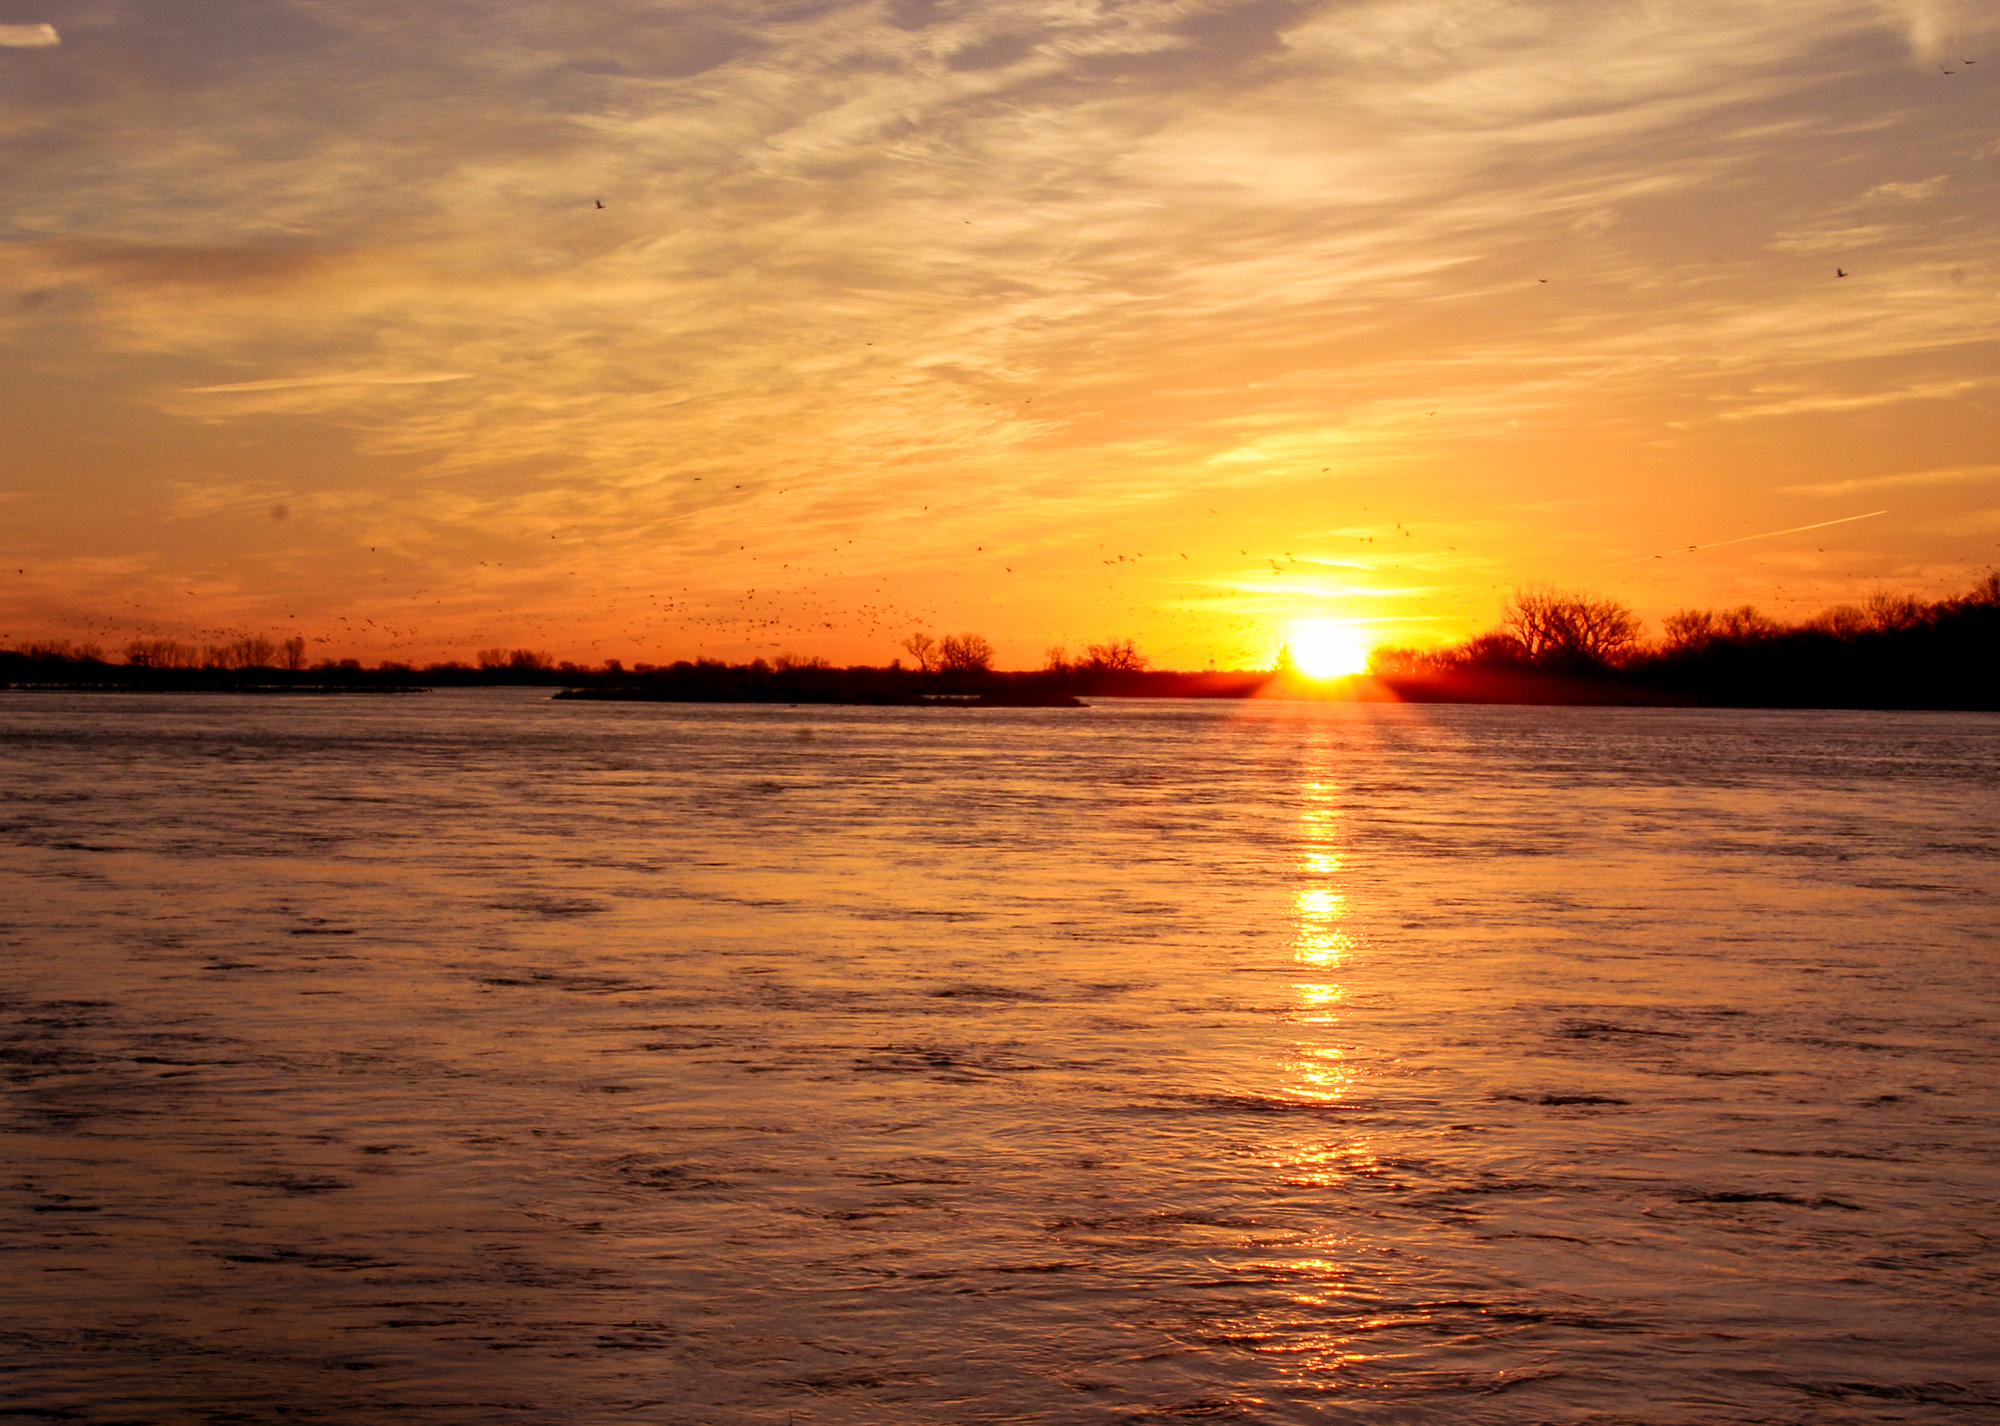 sunrise on the Platte River, NE